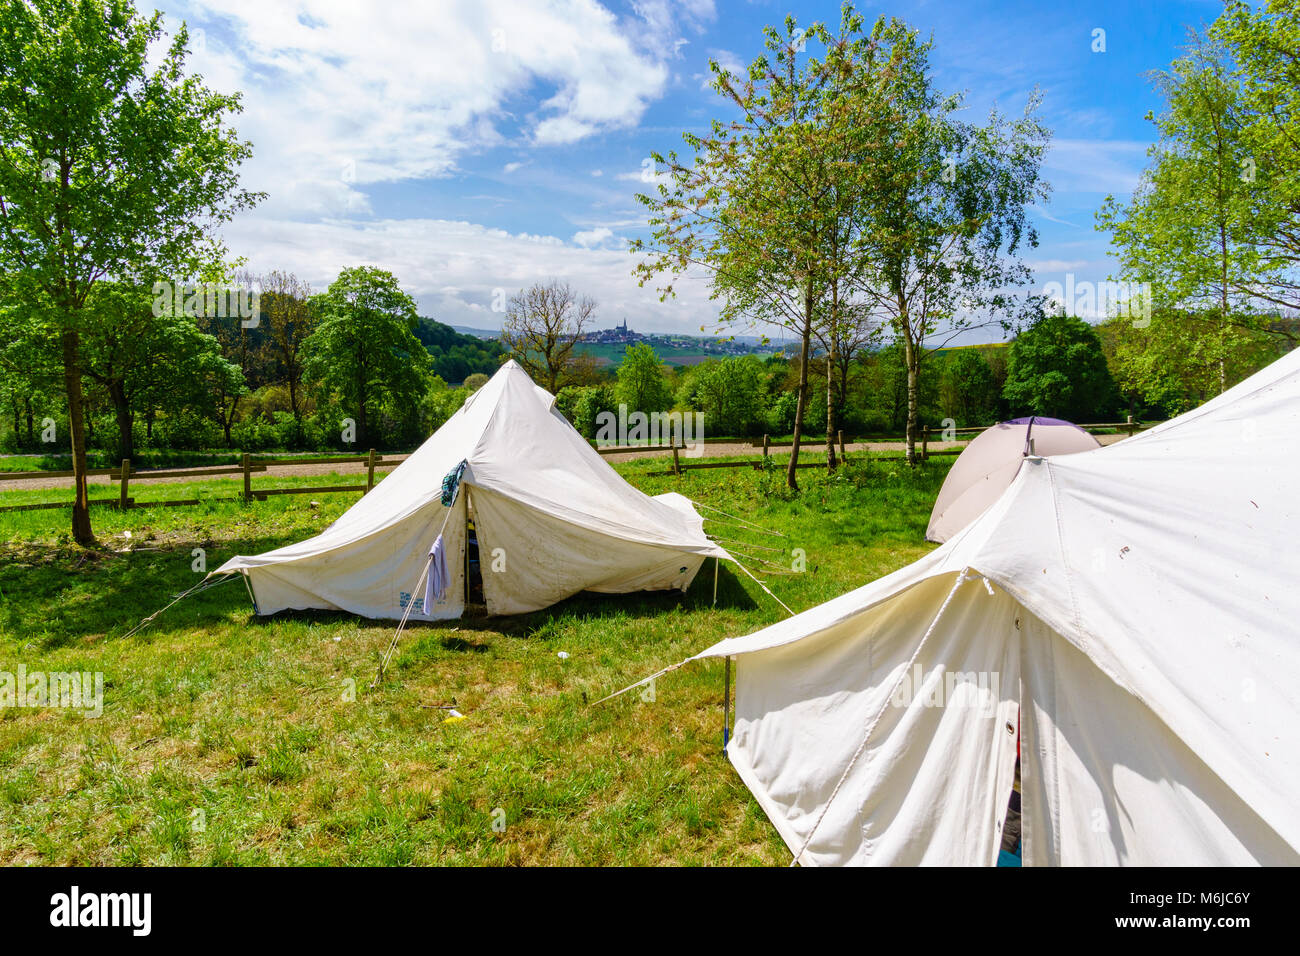 white tents in a scout camp - Stock Image